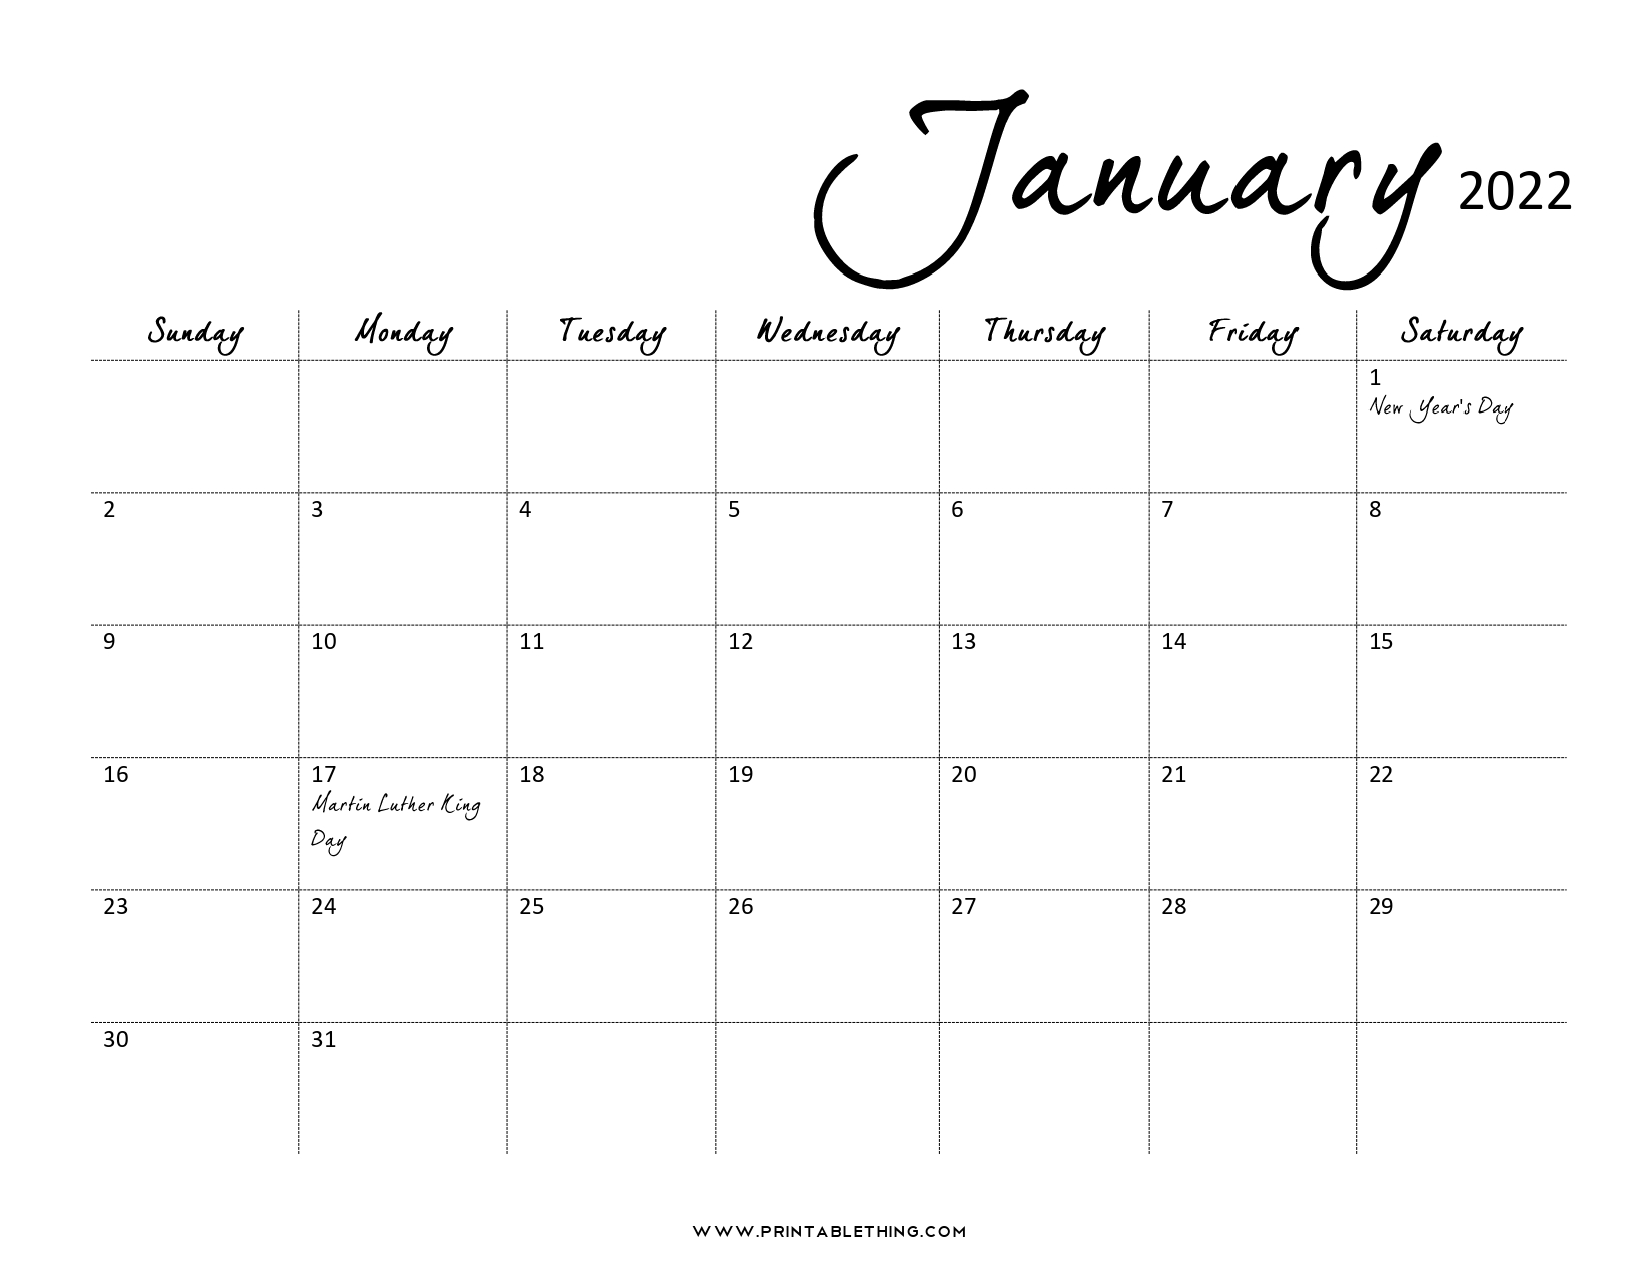 Downloads are subject to this sites term of use. 20+ January 2022 Calendar   Printable, PDF, US Holidays ...